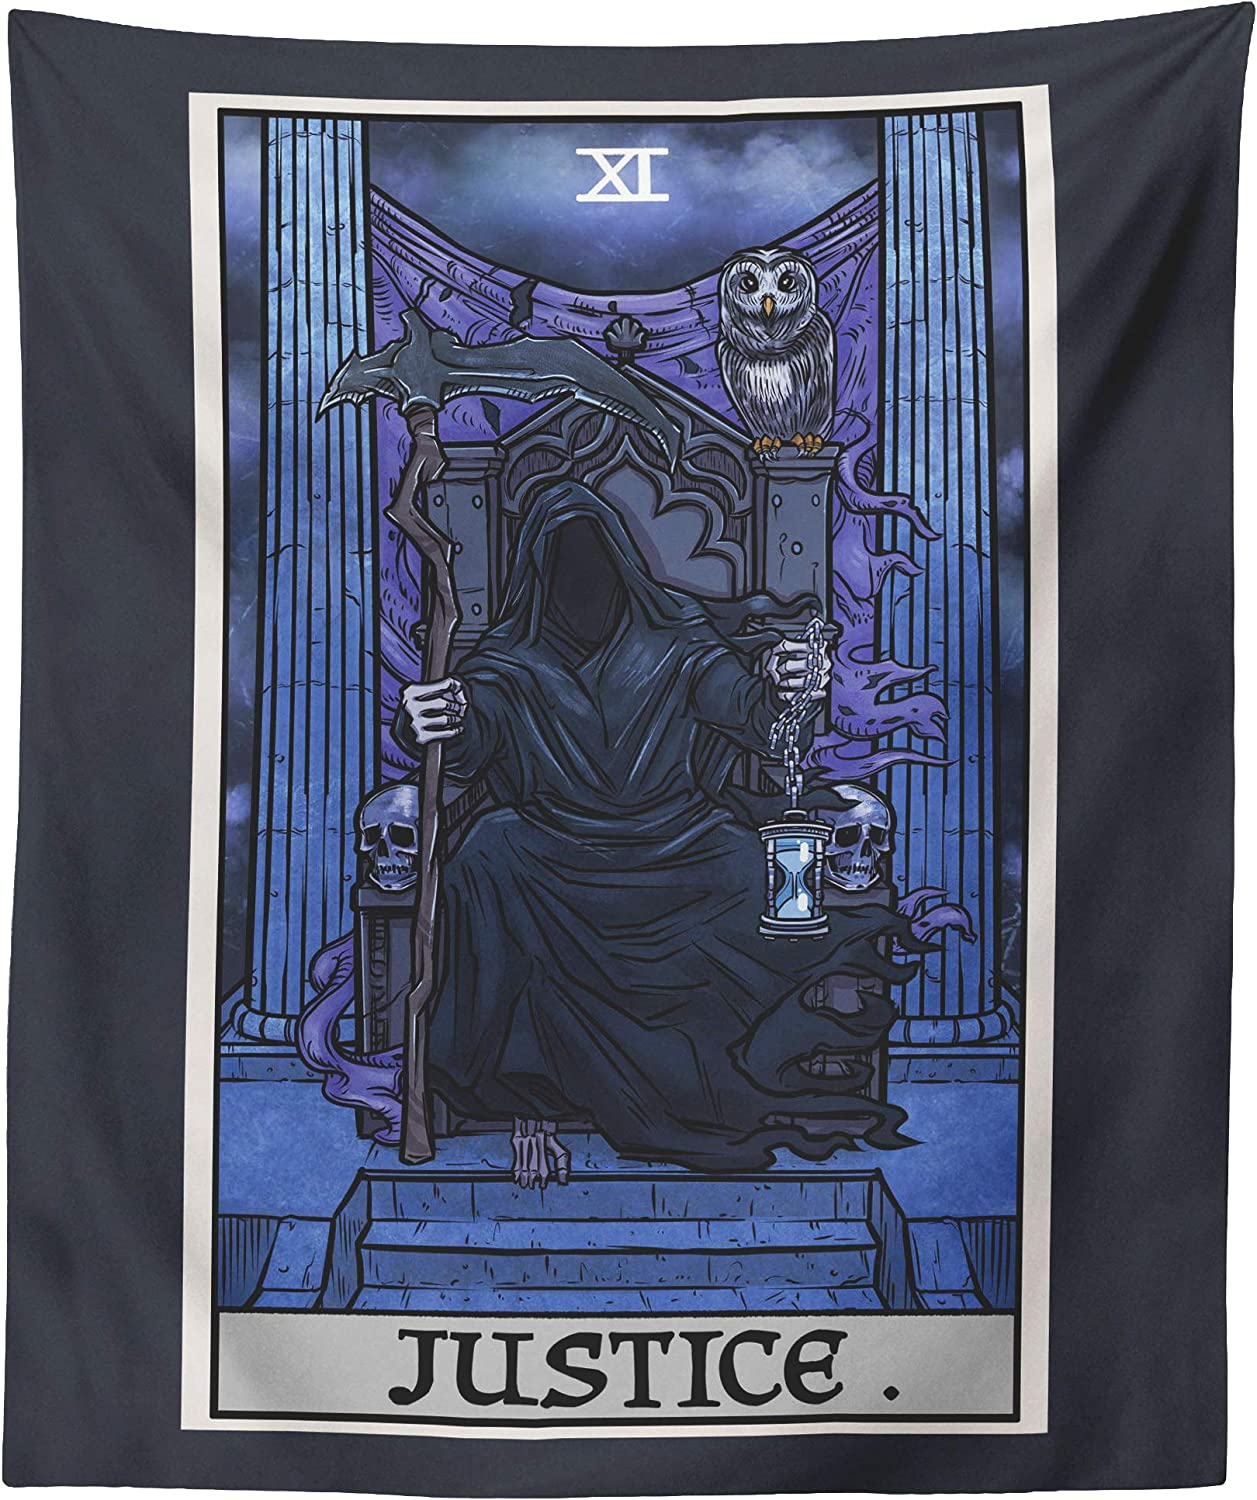 The Ghoulish Garb Justice Tarot Card Tapestry - Grim Reaper - Gothic Halloween Home Decor Wall Hanging (60